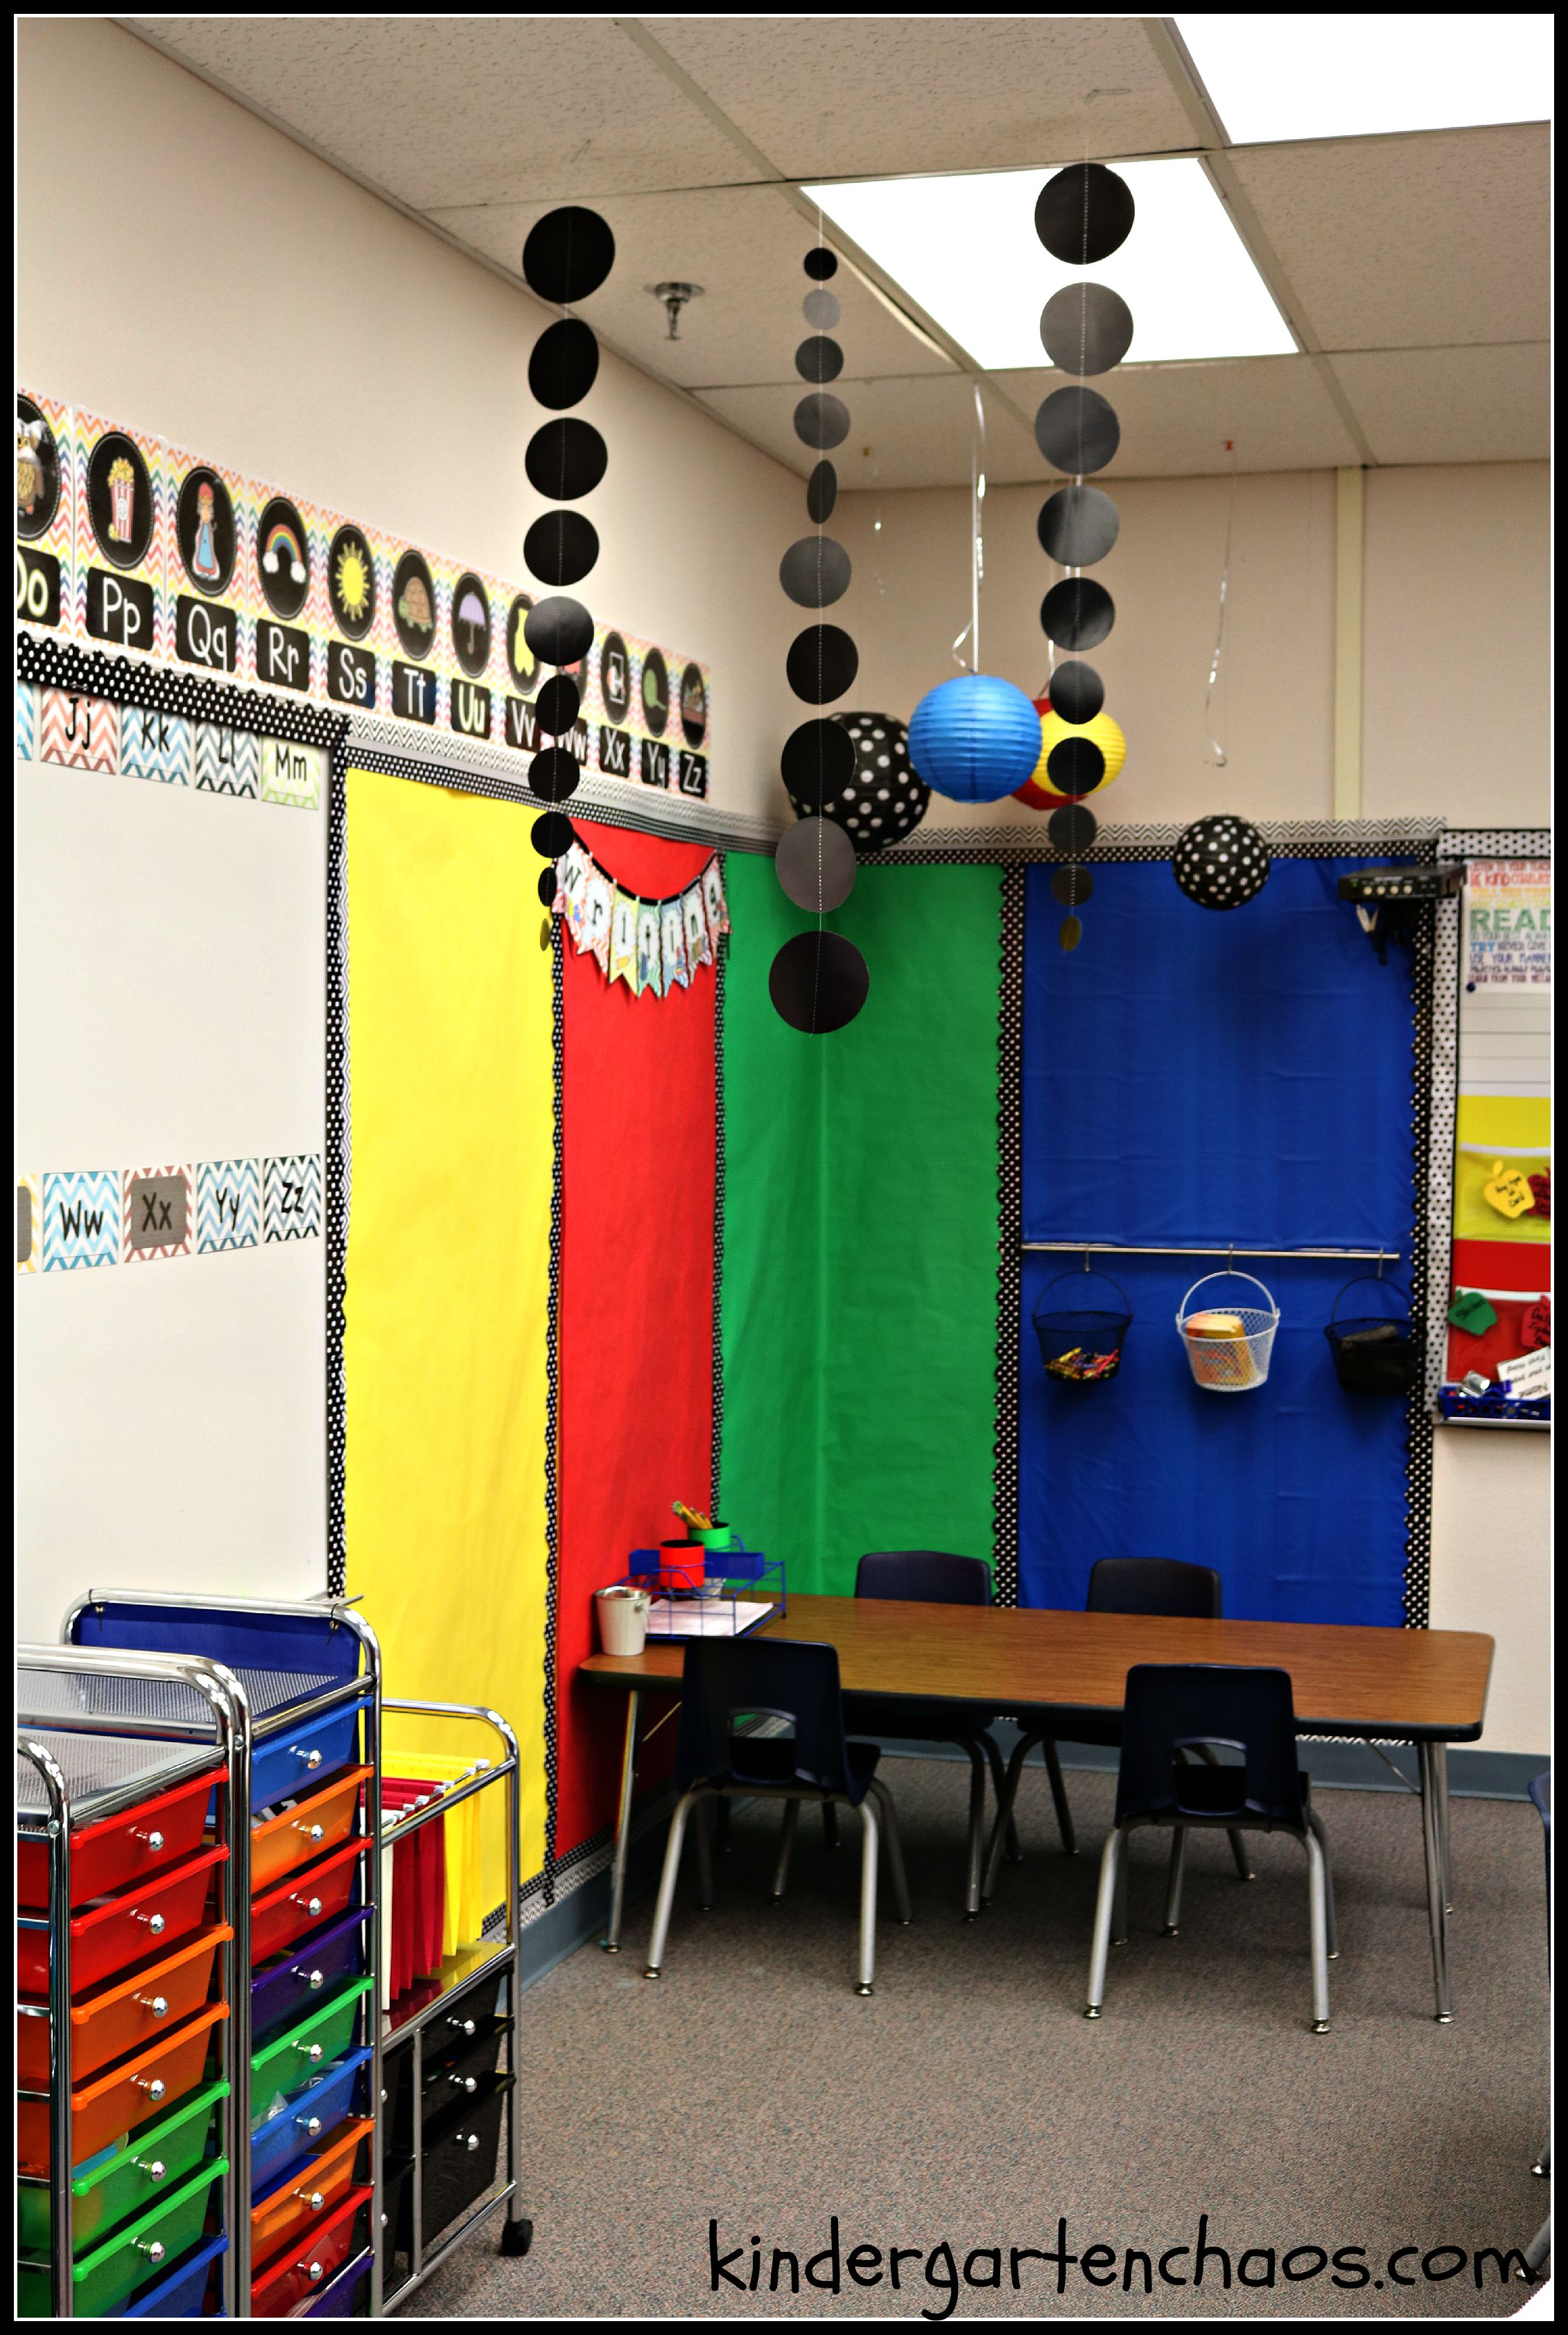 Ideas In Classroom ~ My kindergarten classroom reveal organization